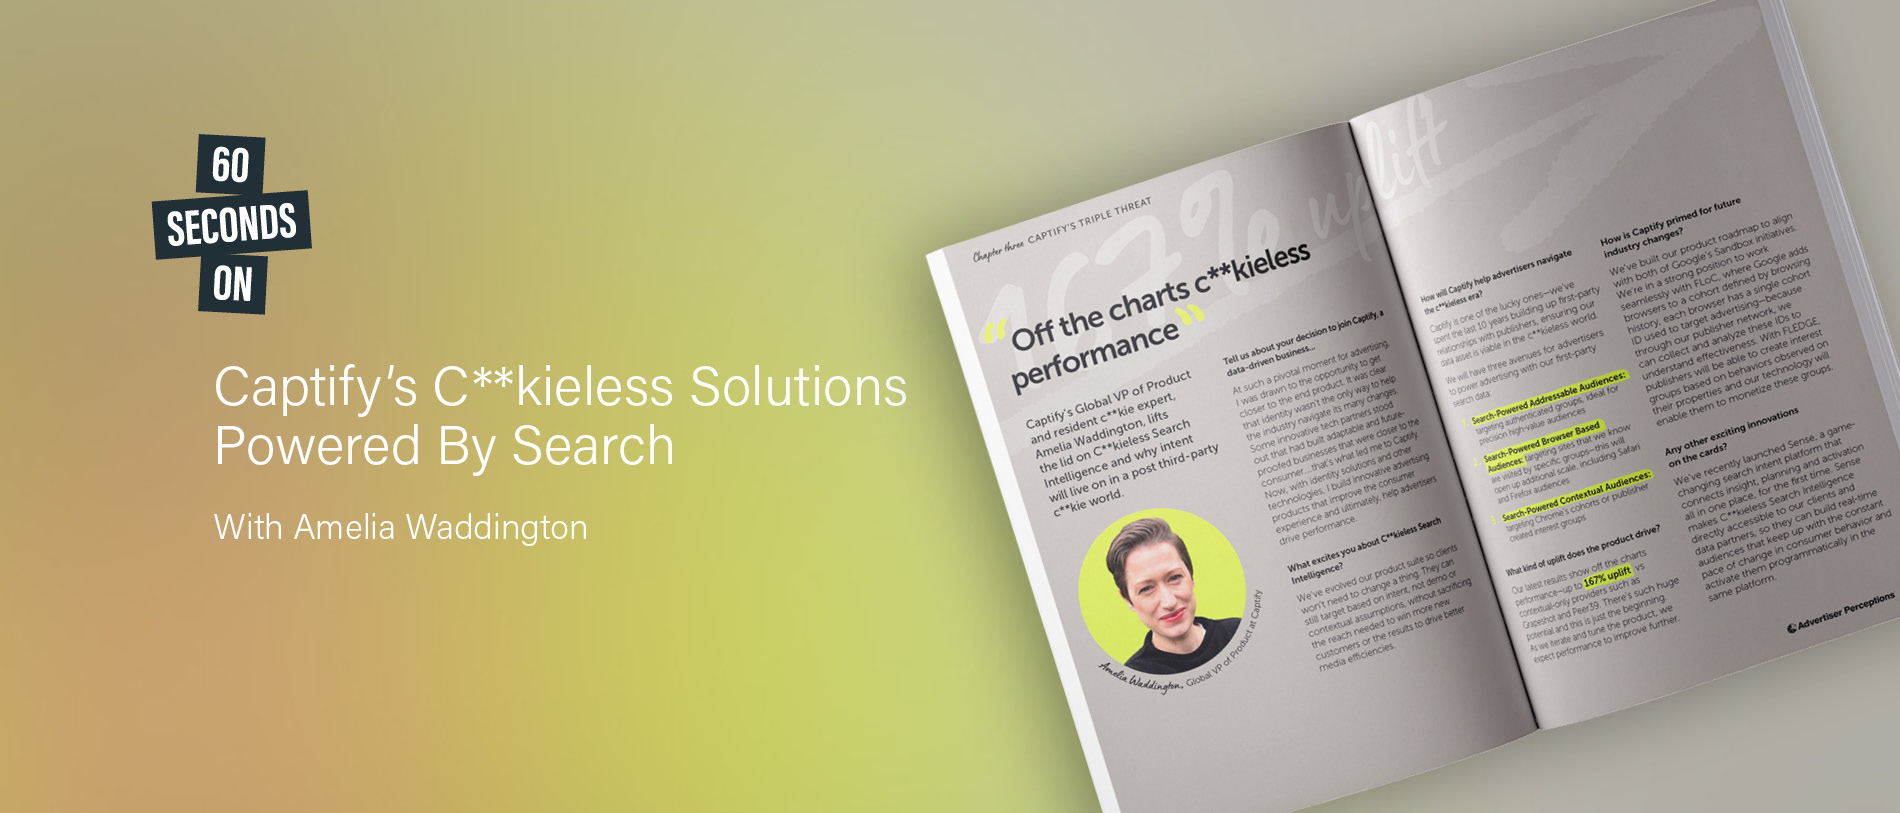 60 Seconds On: Captify's C**kieless Solutions Powered By Search—With Amelia Waddington